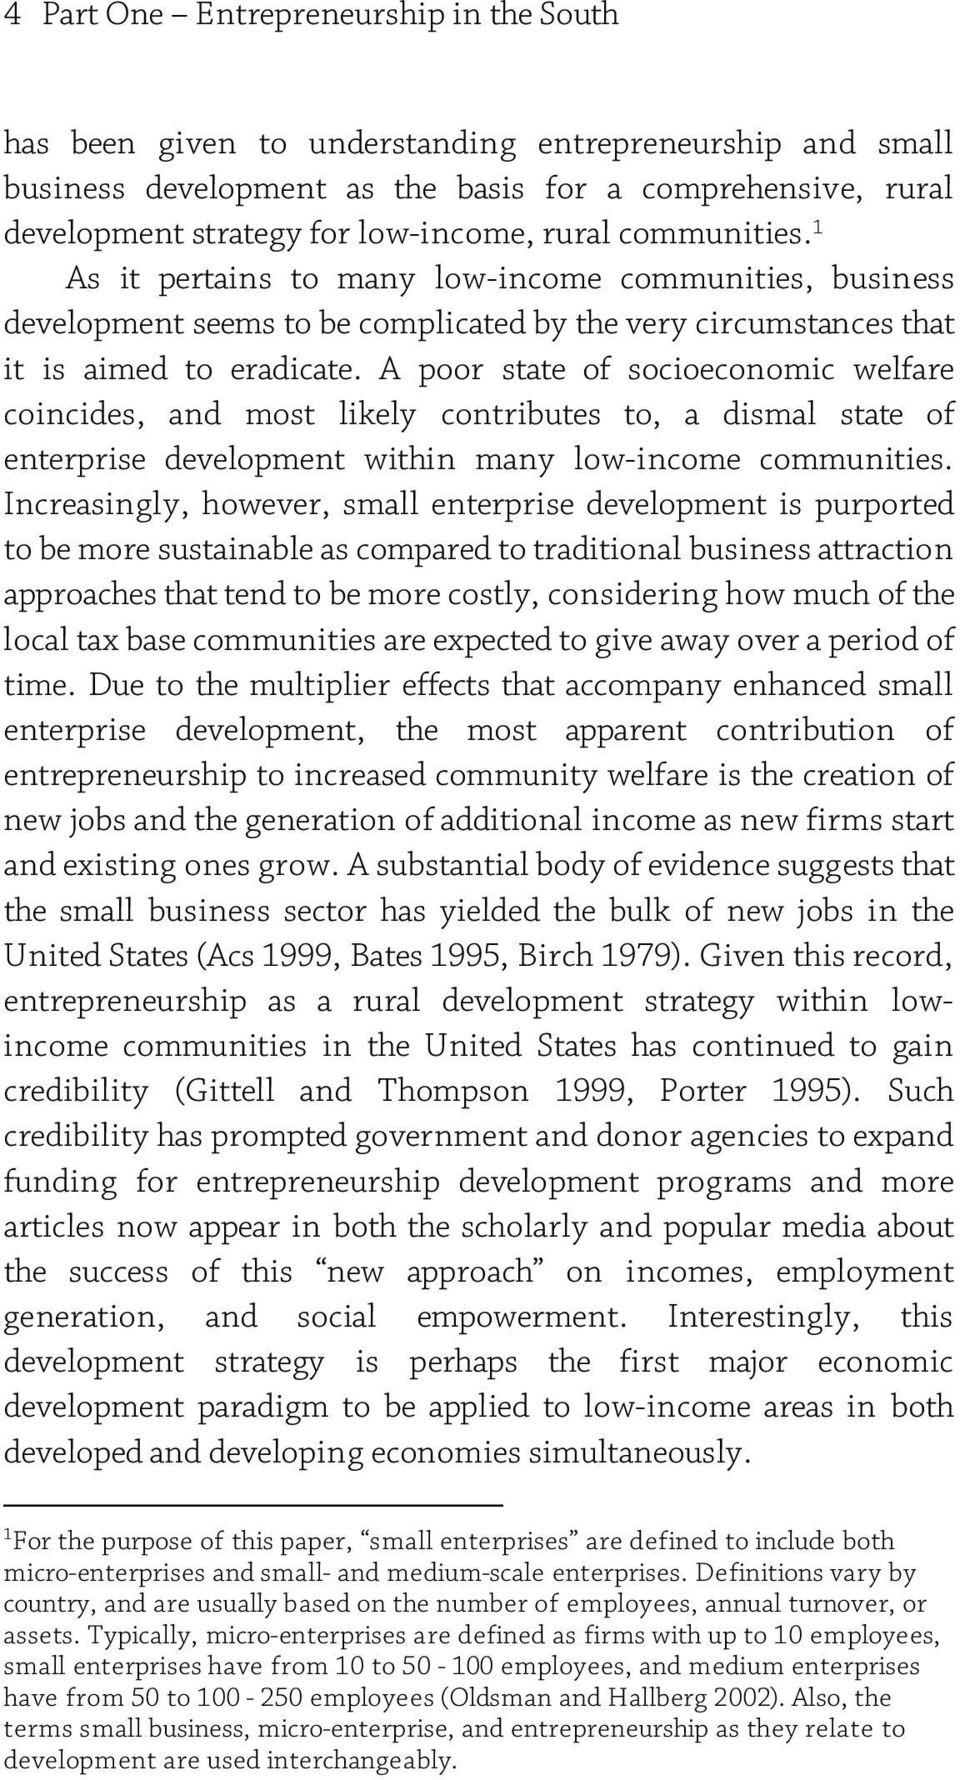 A poor state of socioeconomic welfare coincides, and most likely contributes to, a dismal state of enterprise development within many low-income communities.